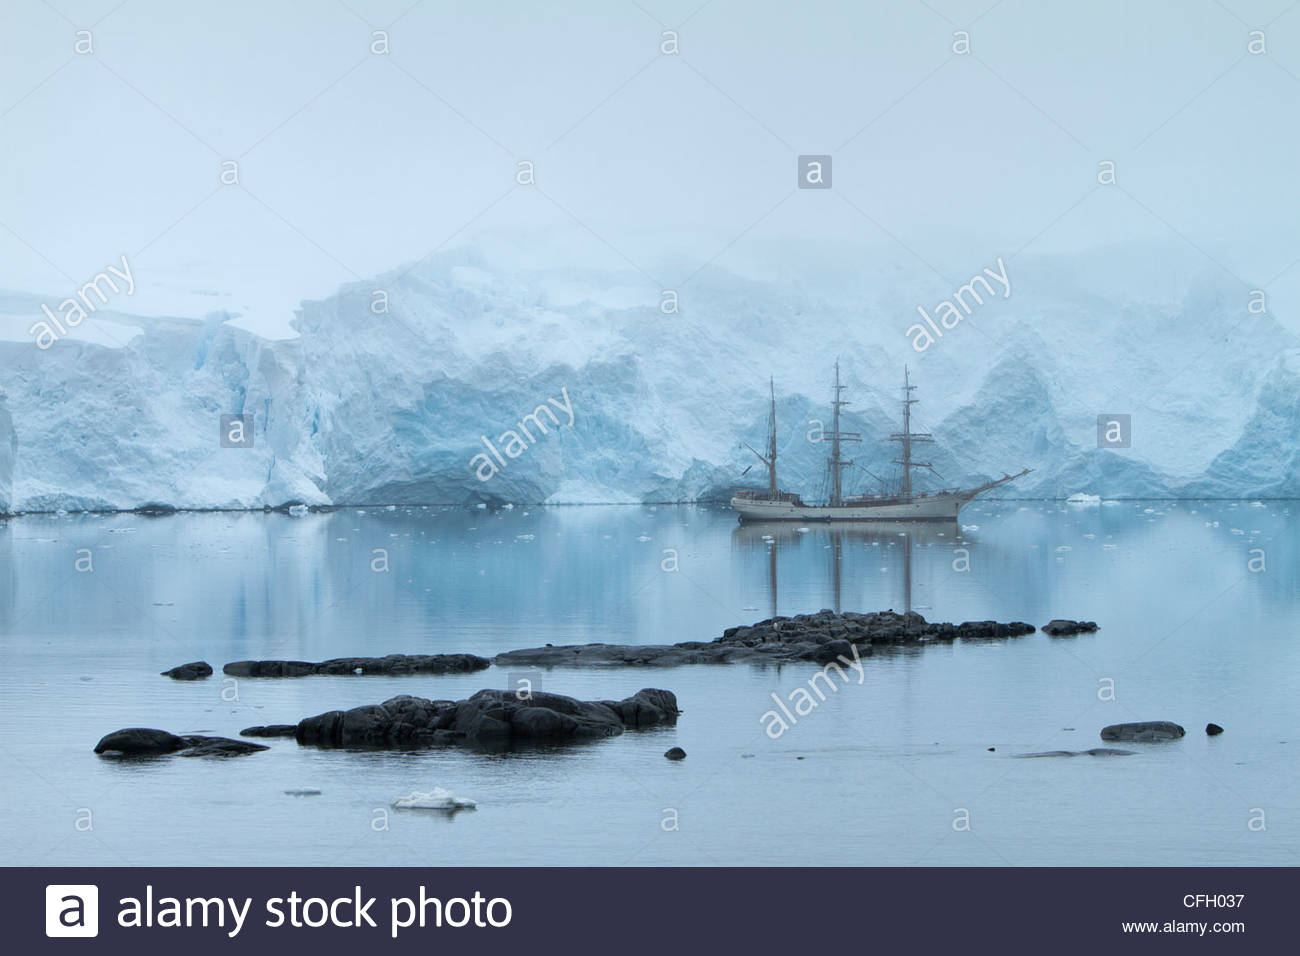 A barque at anchor in a calm inlet. - Stock Image